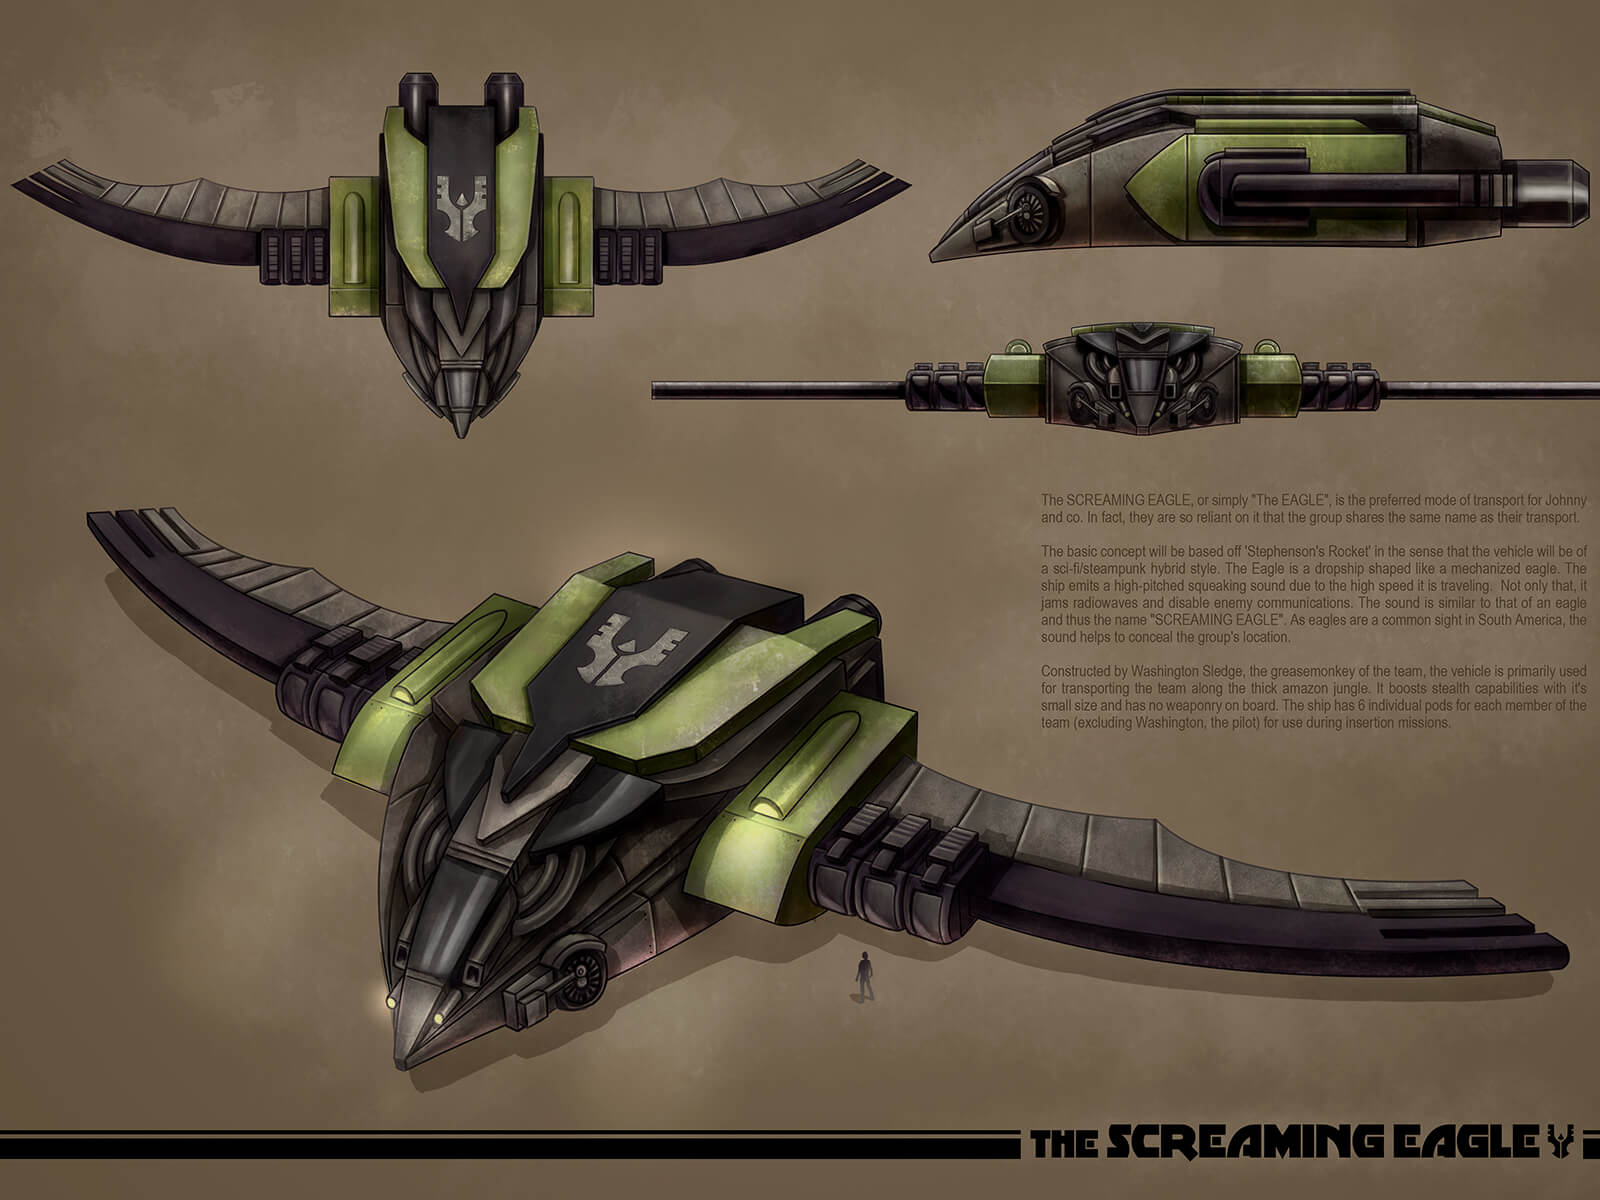 Concept art of a black and green flying vehicle with ornamentation resembling an eagle as seen from different angles.